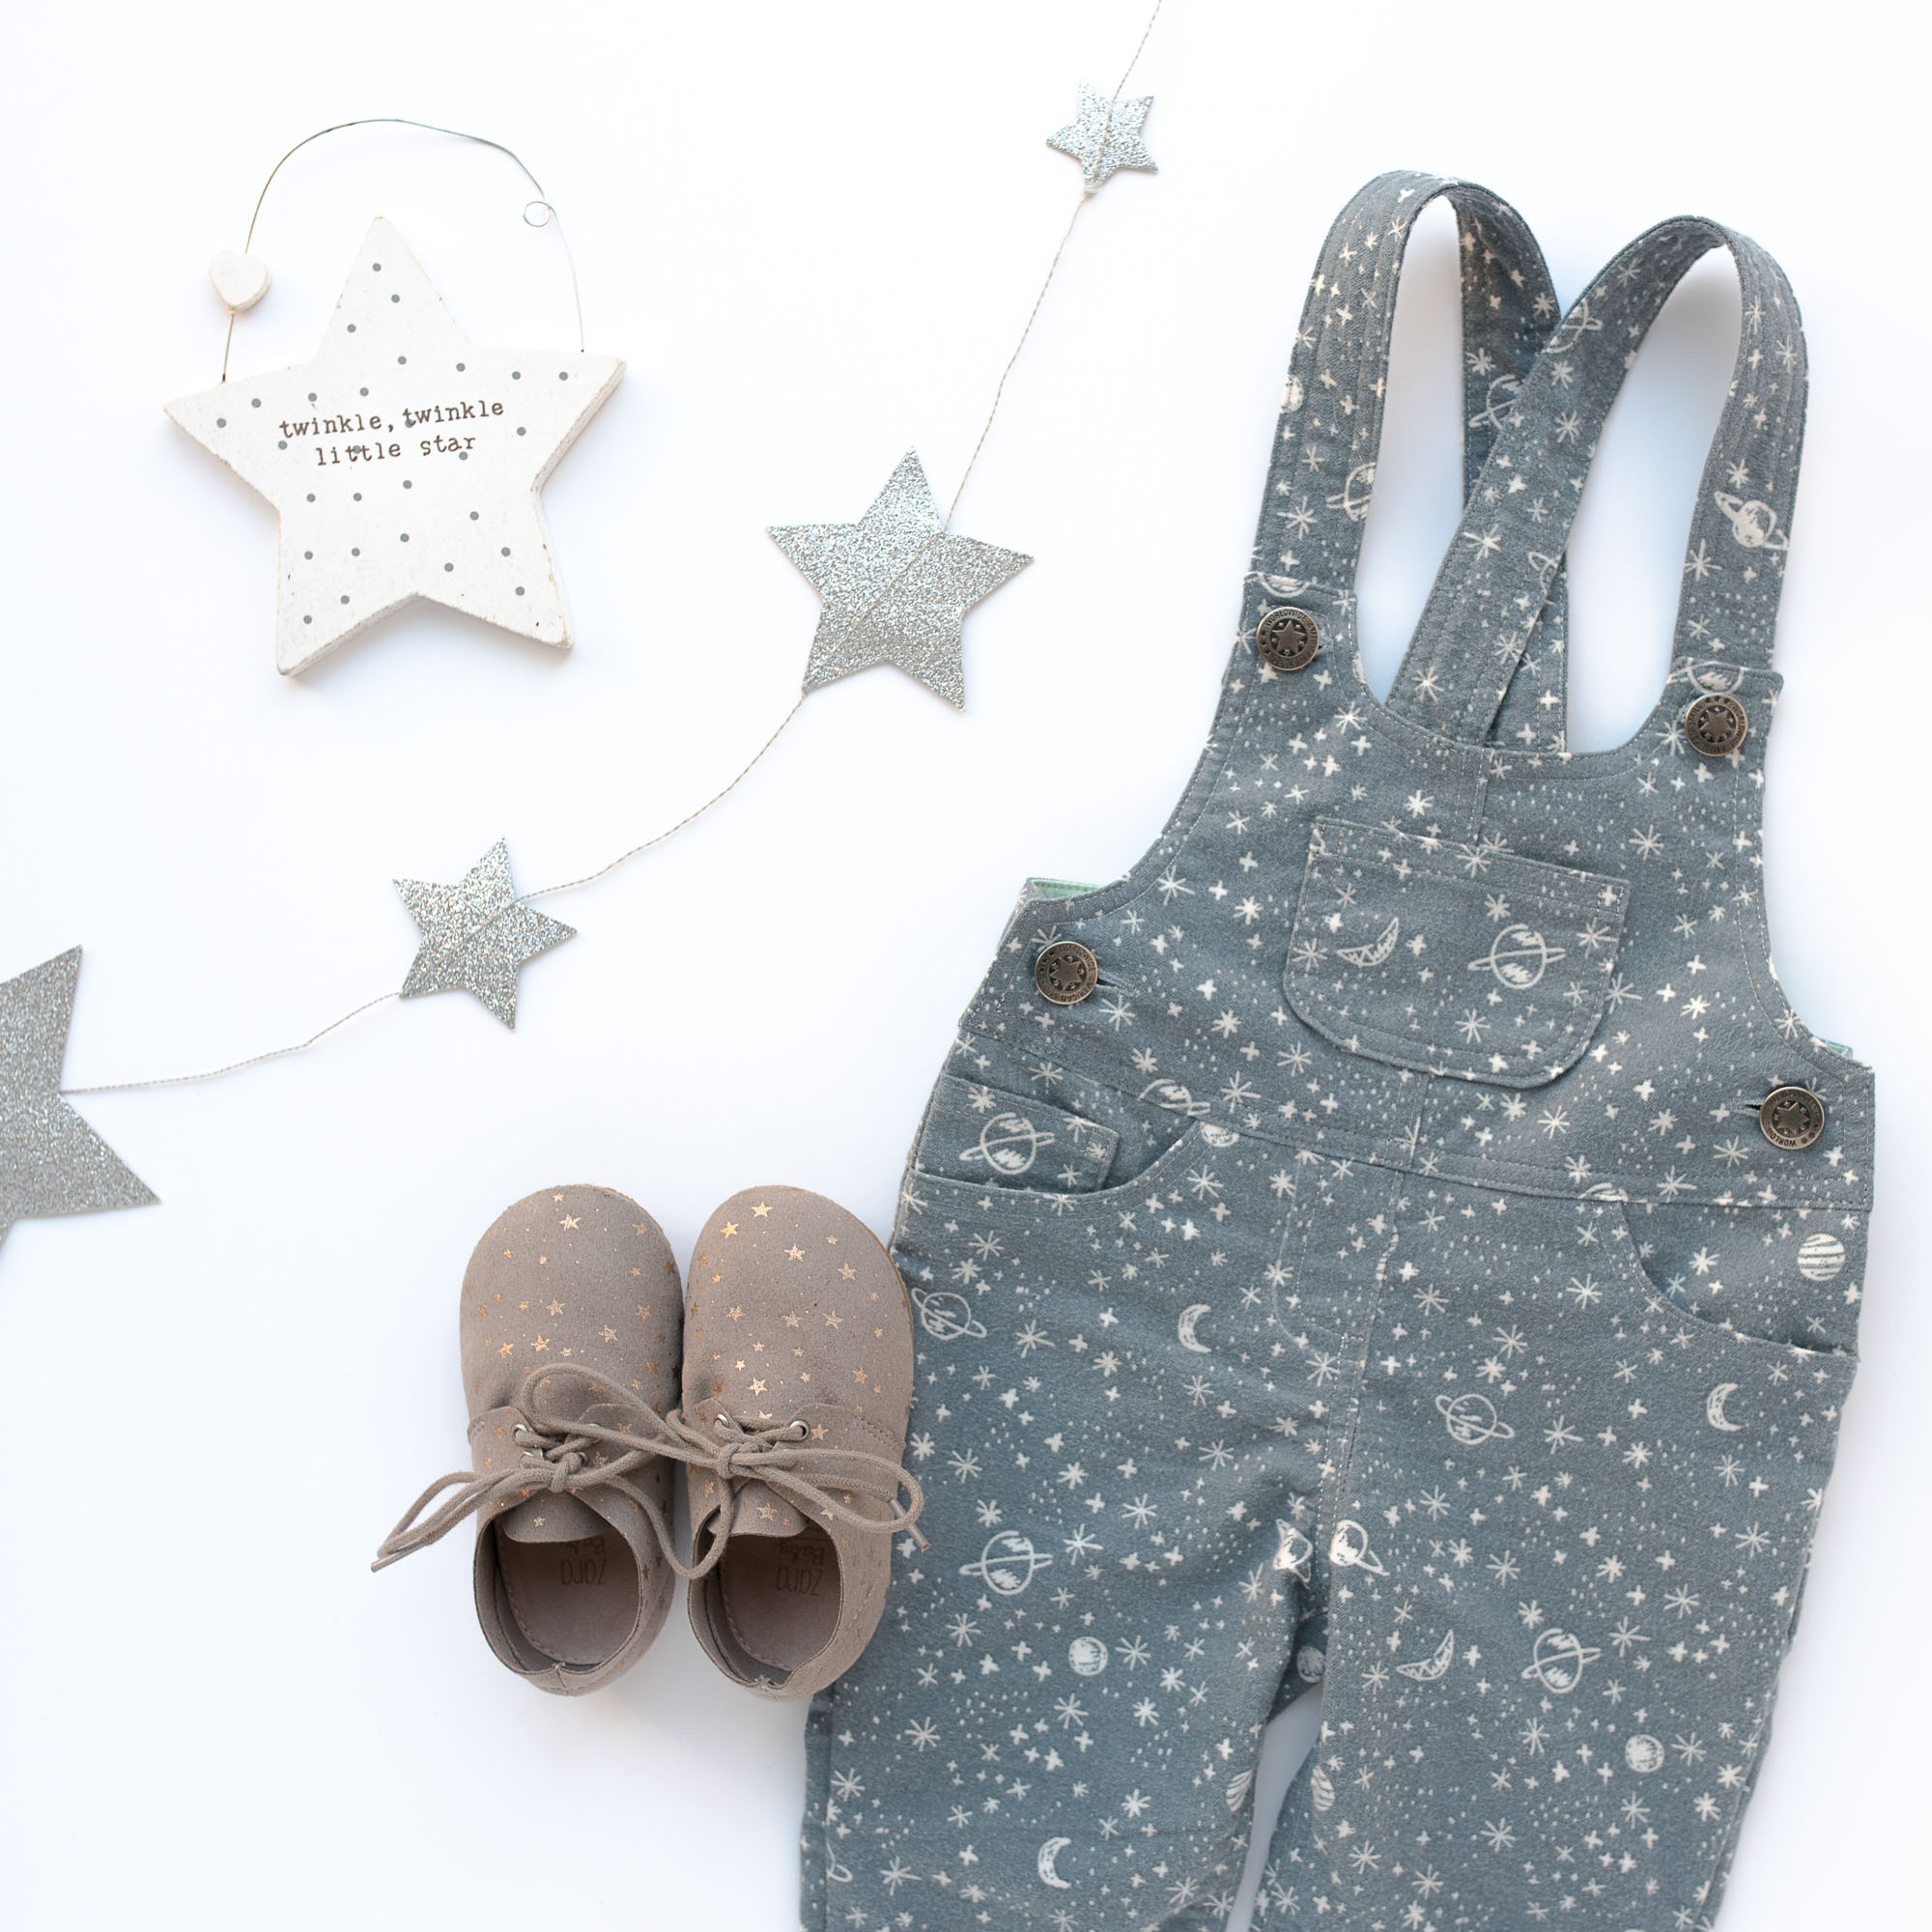 loveralls-dungarees-by-petit-a-petit-patterns-flat-lay